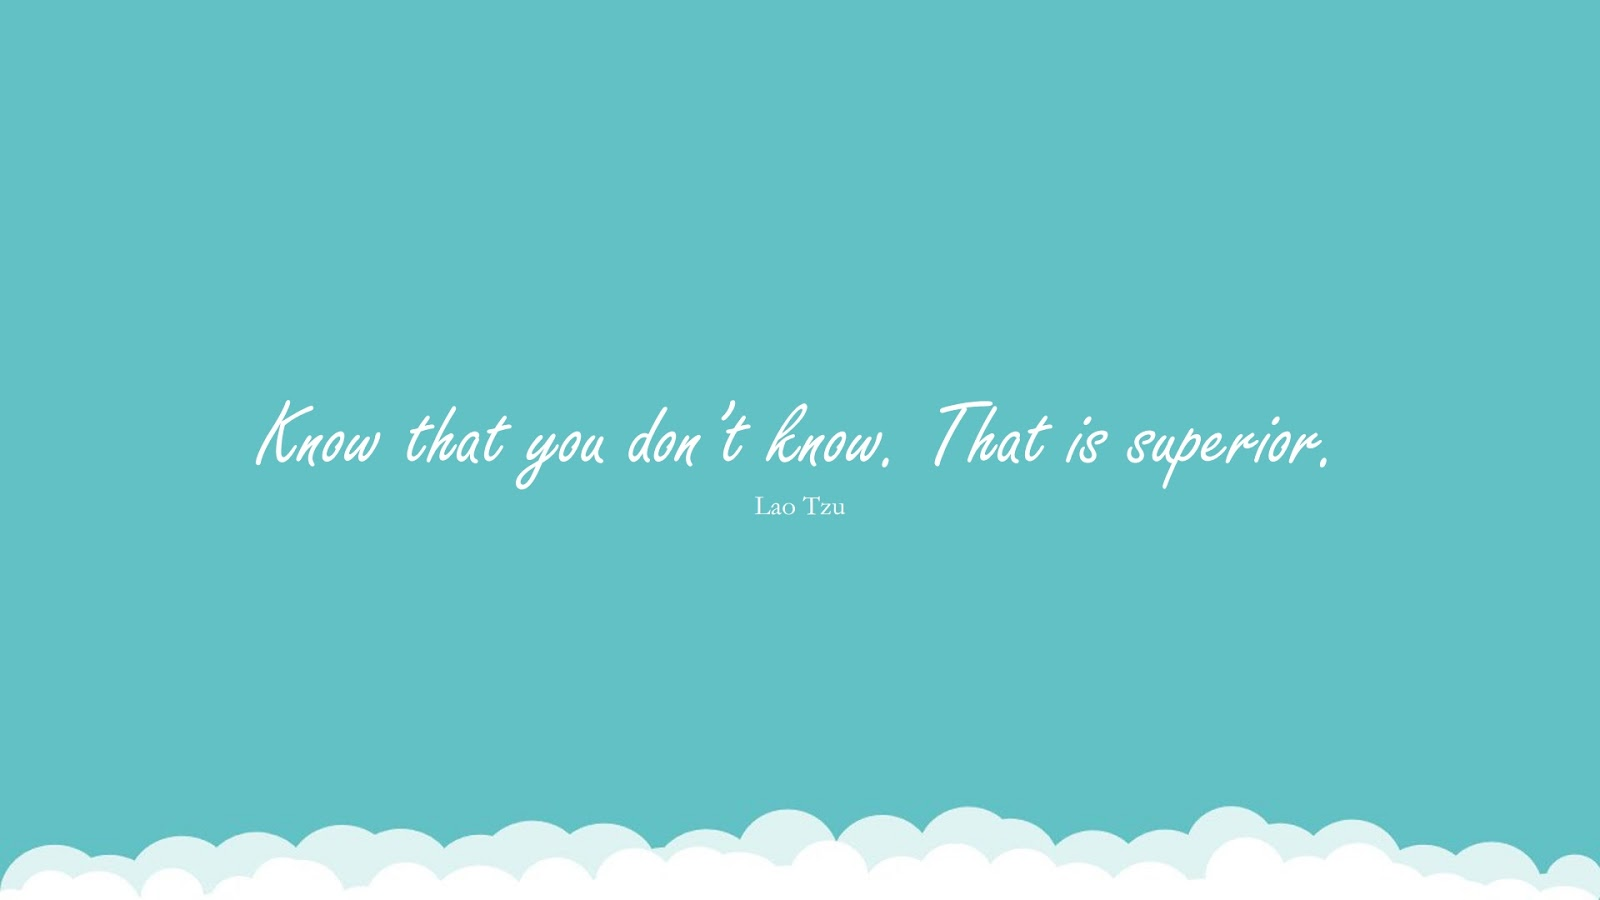 Know that you don't know. That is superior. (Lao Tzu);  #KnowledgeQuotes